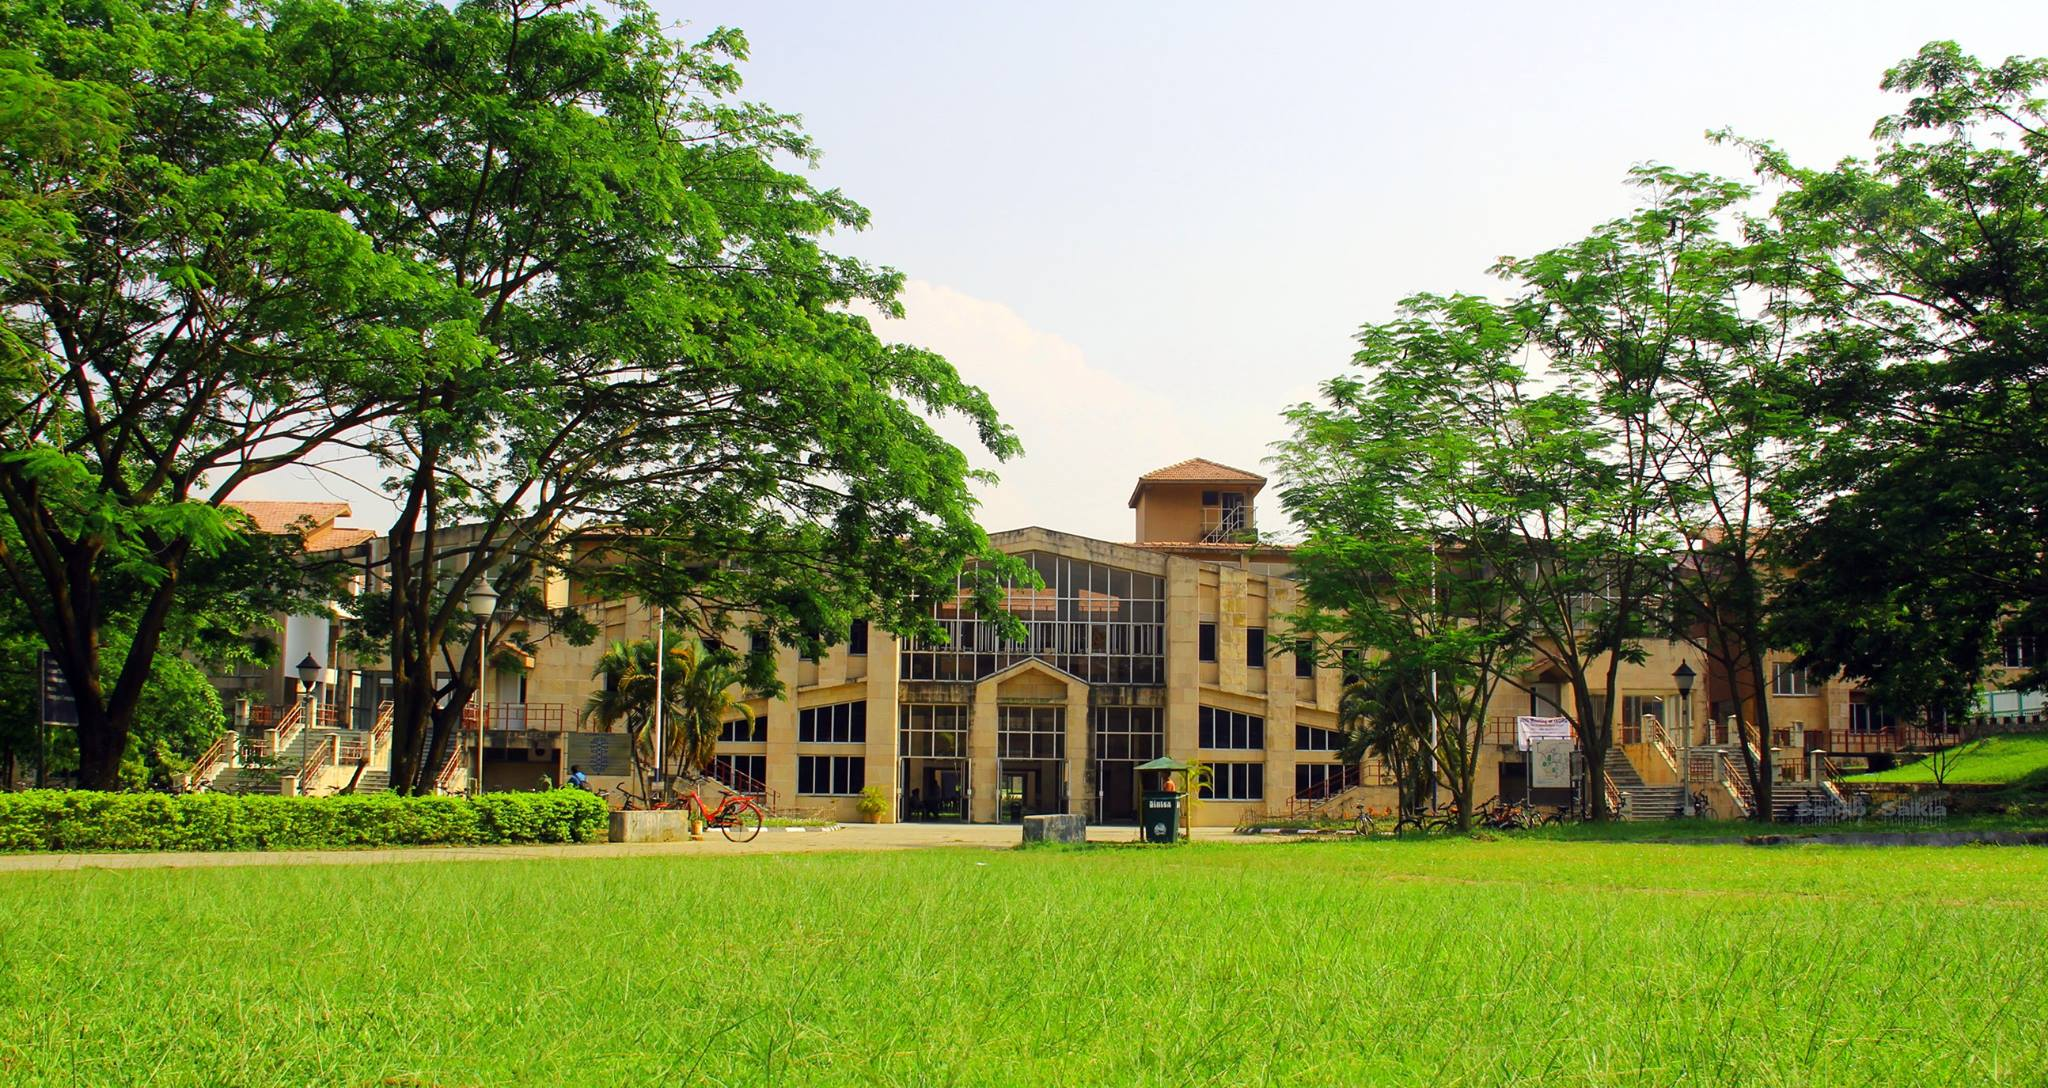 10: IIT Guwahati: The university was ranked tenth in the QS report. This was the sixth Indian Institute of Technology established in India. The history of IIT Guwahati traces its roots to the 1985 Assam Accord signed between the All Assam Students Union and the Government of India, which mentions the general improvement in education facilities in Assam and specifically the setting up of an IIT. (Image/Caption: Facebook, IIT Guwahati)